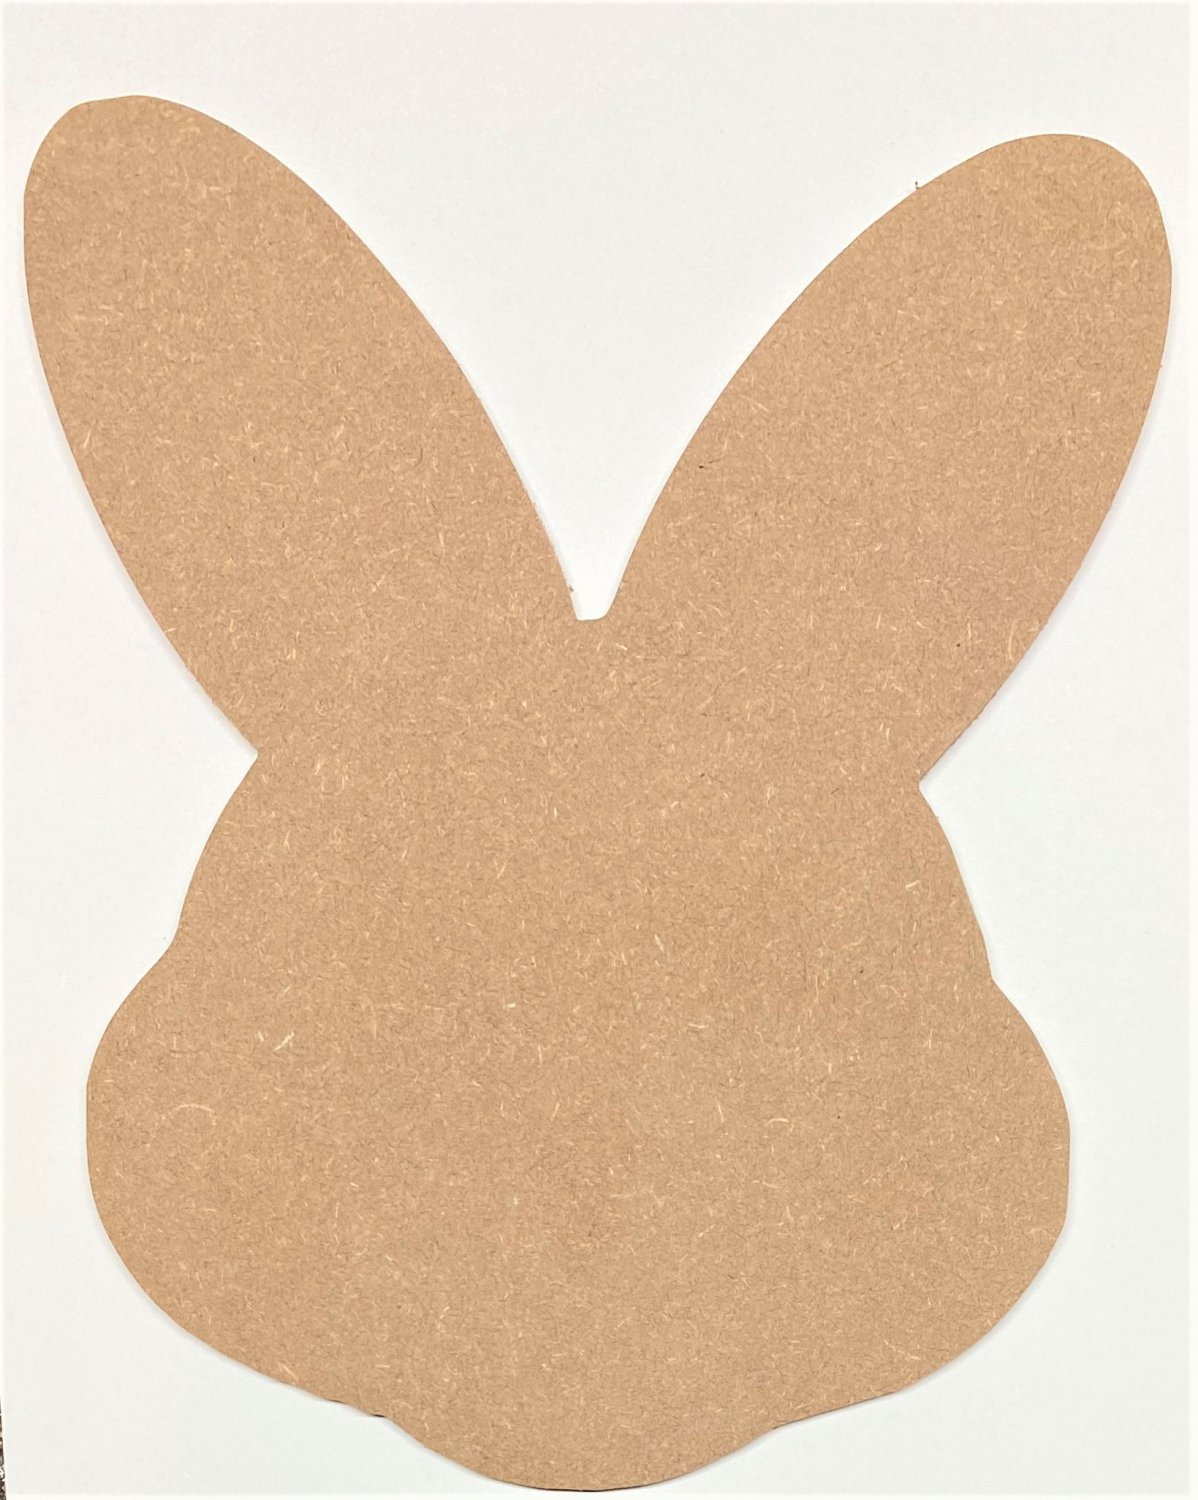 "24"" - BUNNY HEAD - 1/4""Thick MDF Cut Out Made in the USA"